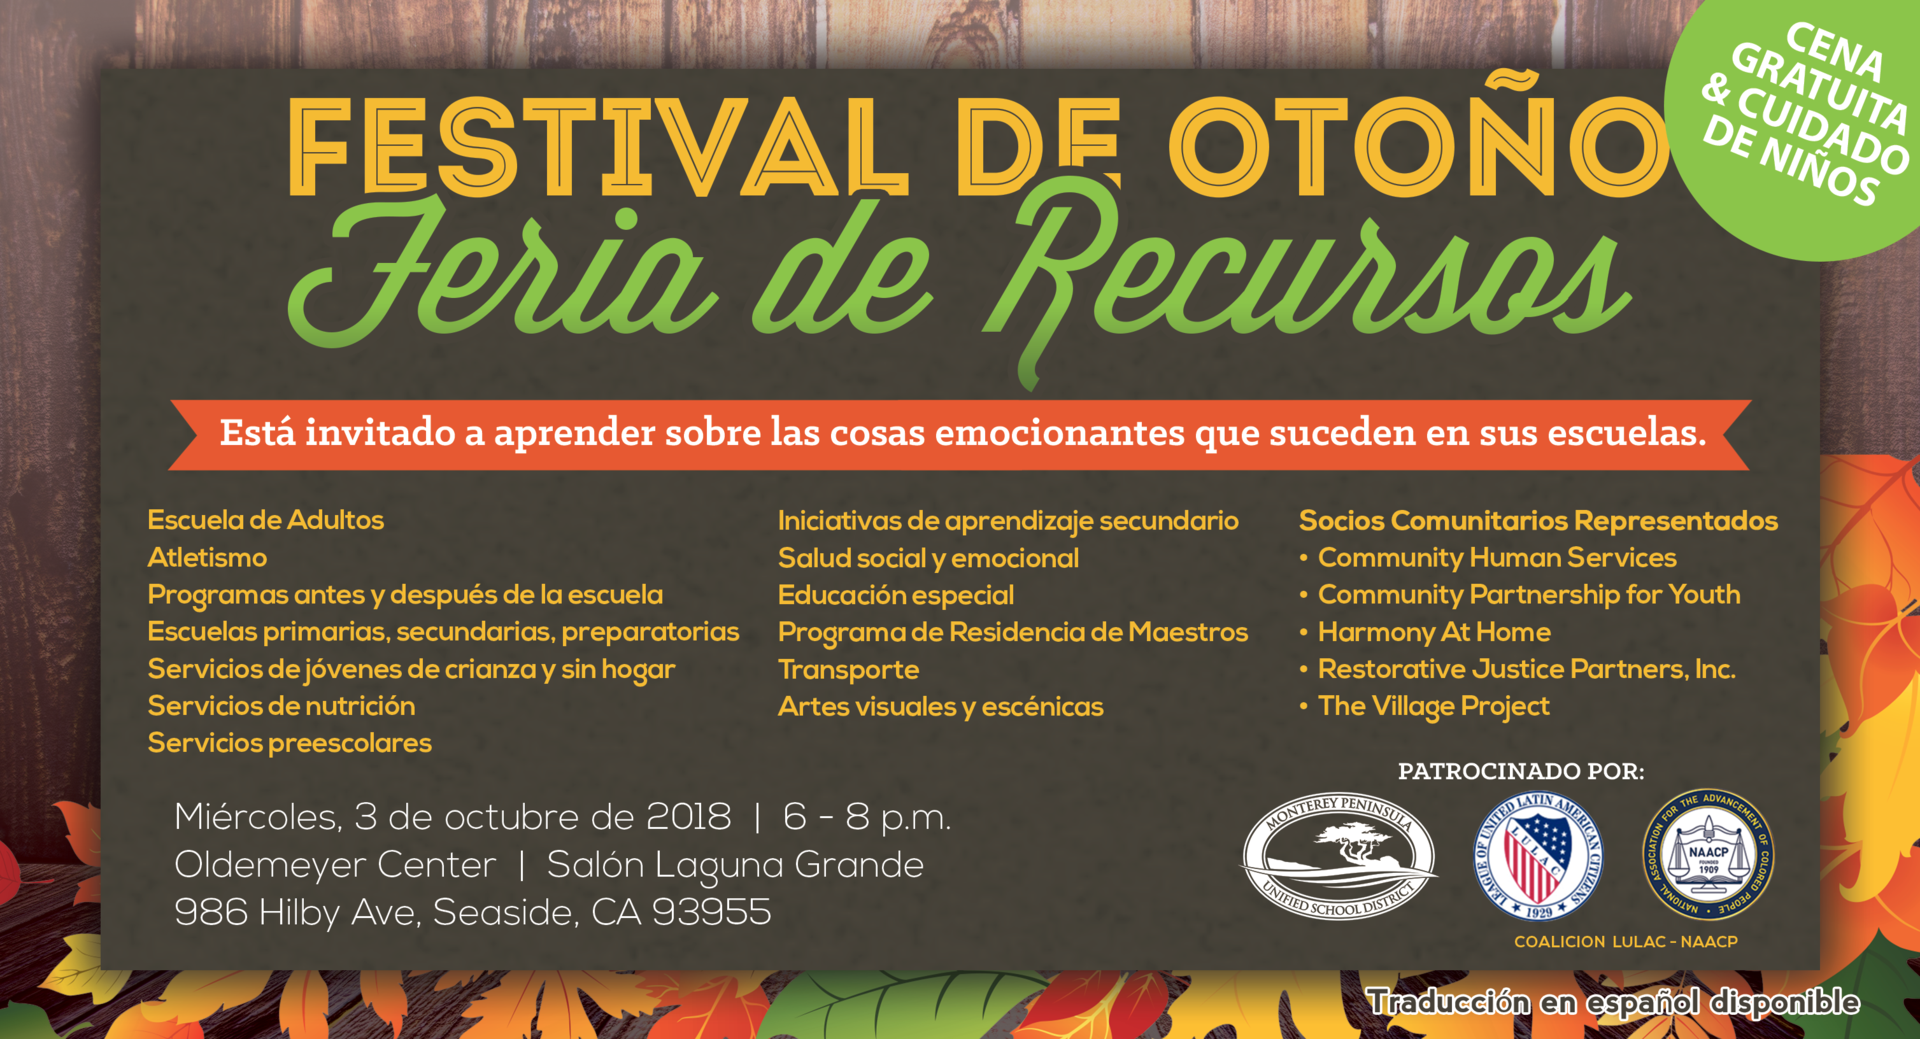 Spanish version of Fall Festival Resource Fair Flyer - see article for full text